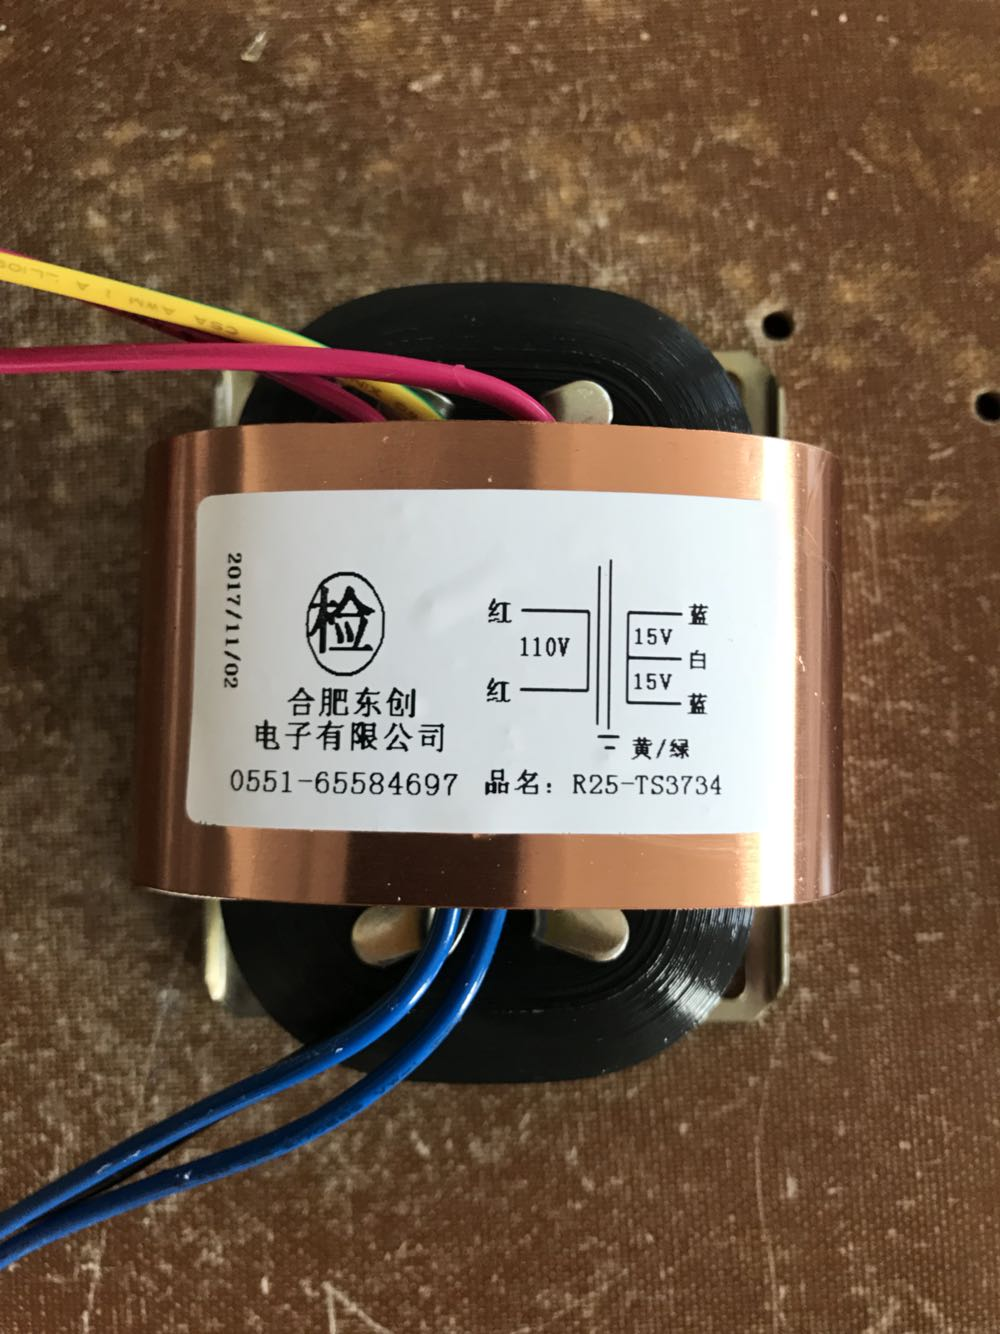 15V-0-15V 1A Transformer R Core 30VA R25 custom transformer 110V with copper shield for Pre-decoder HIFI power supply15V-0-15V 1A Transformer R Core 30VA R25 custom transformer 110V with copper shield for Pre-decoder HIFI power supply